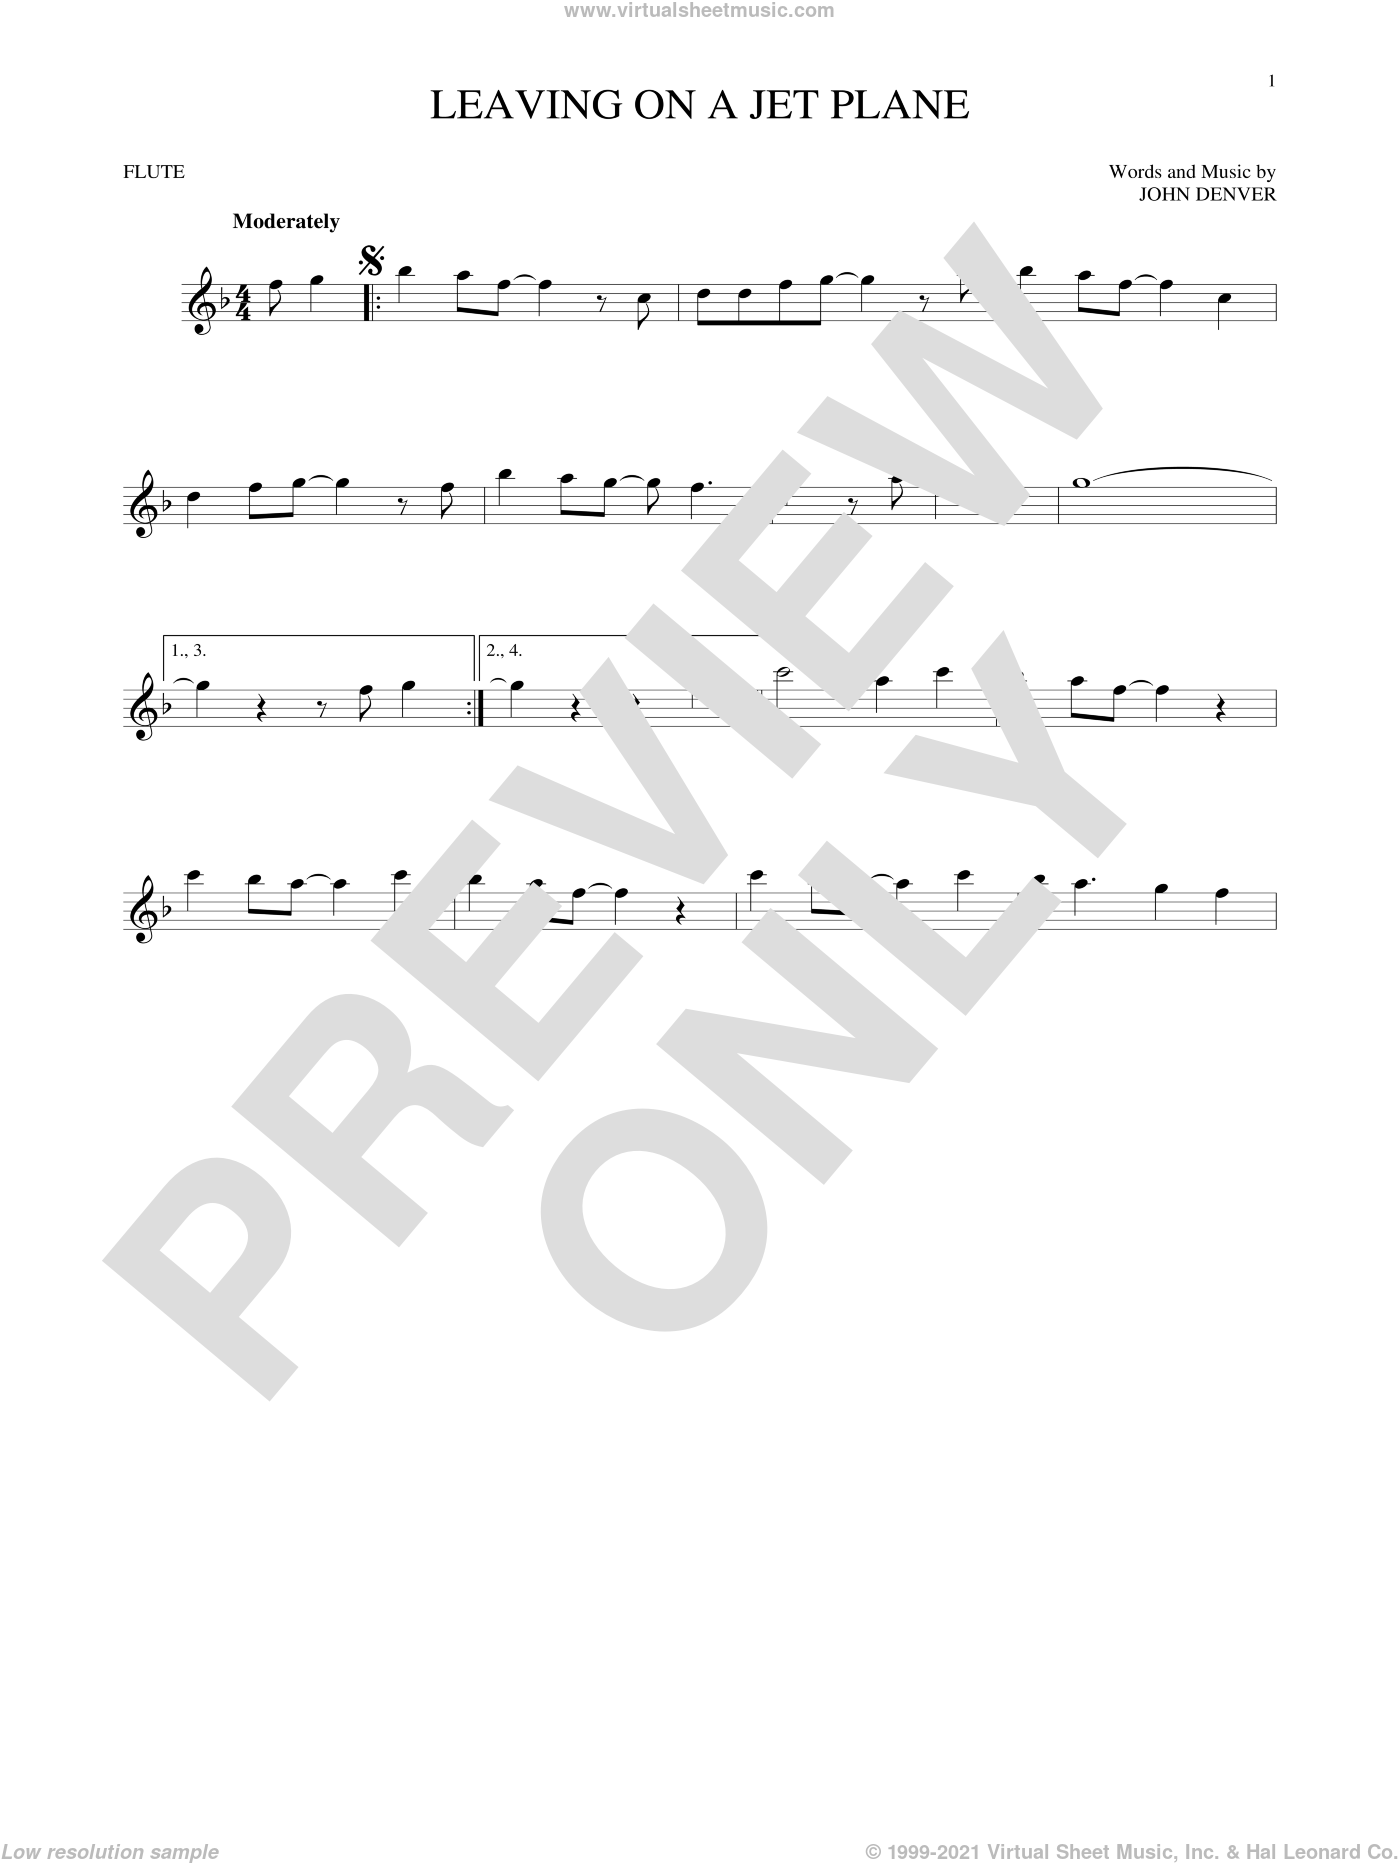 Leaving On A Jet Plane sheet music for flute solo by John Denver and Peter, Paul & Mary, intermediate skill level